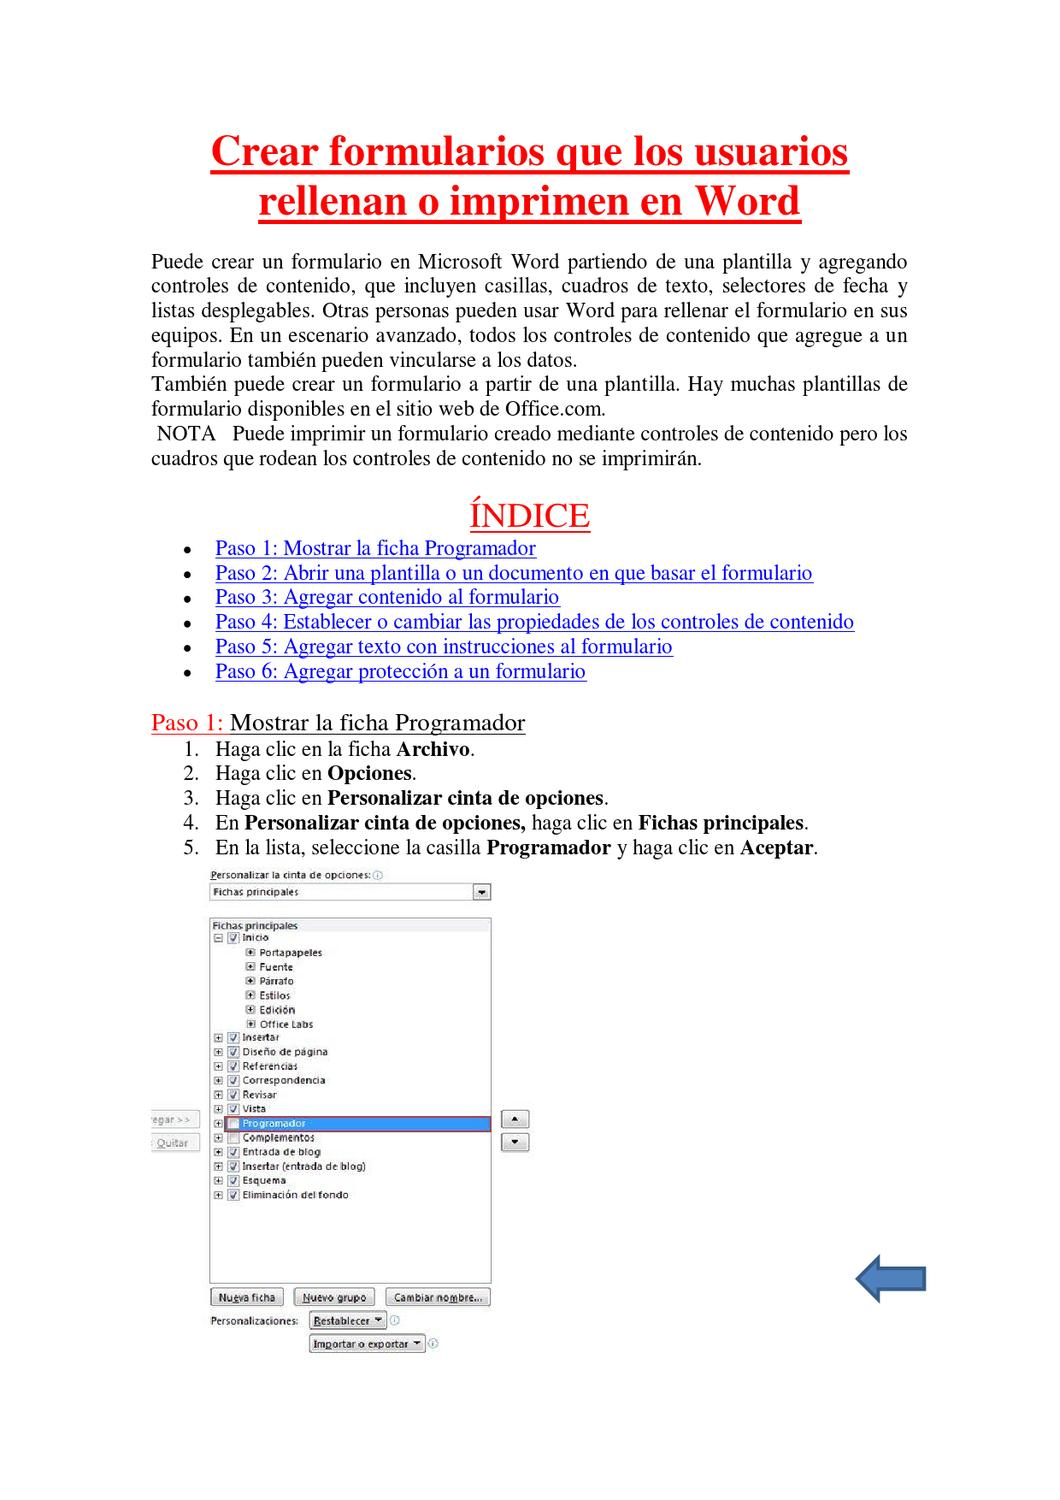 Unidad Formularios Word 2010 by Peter Michael - issuu